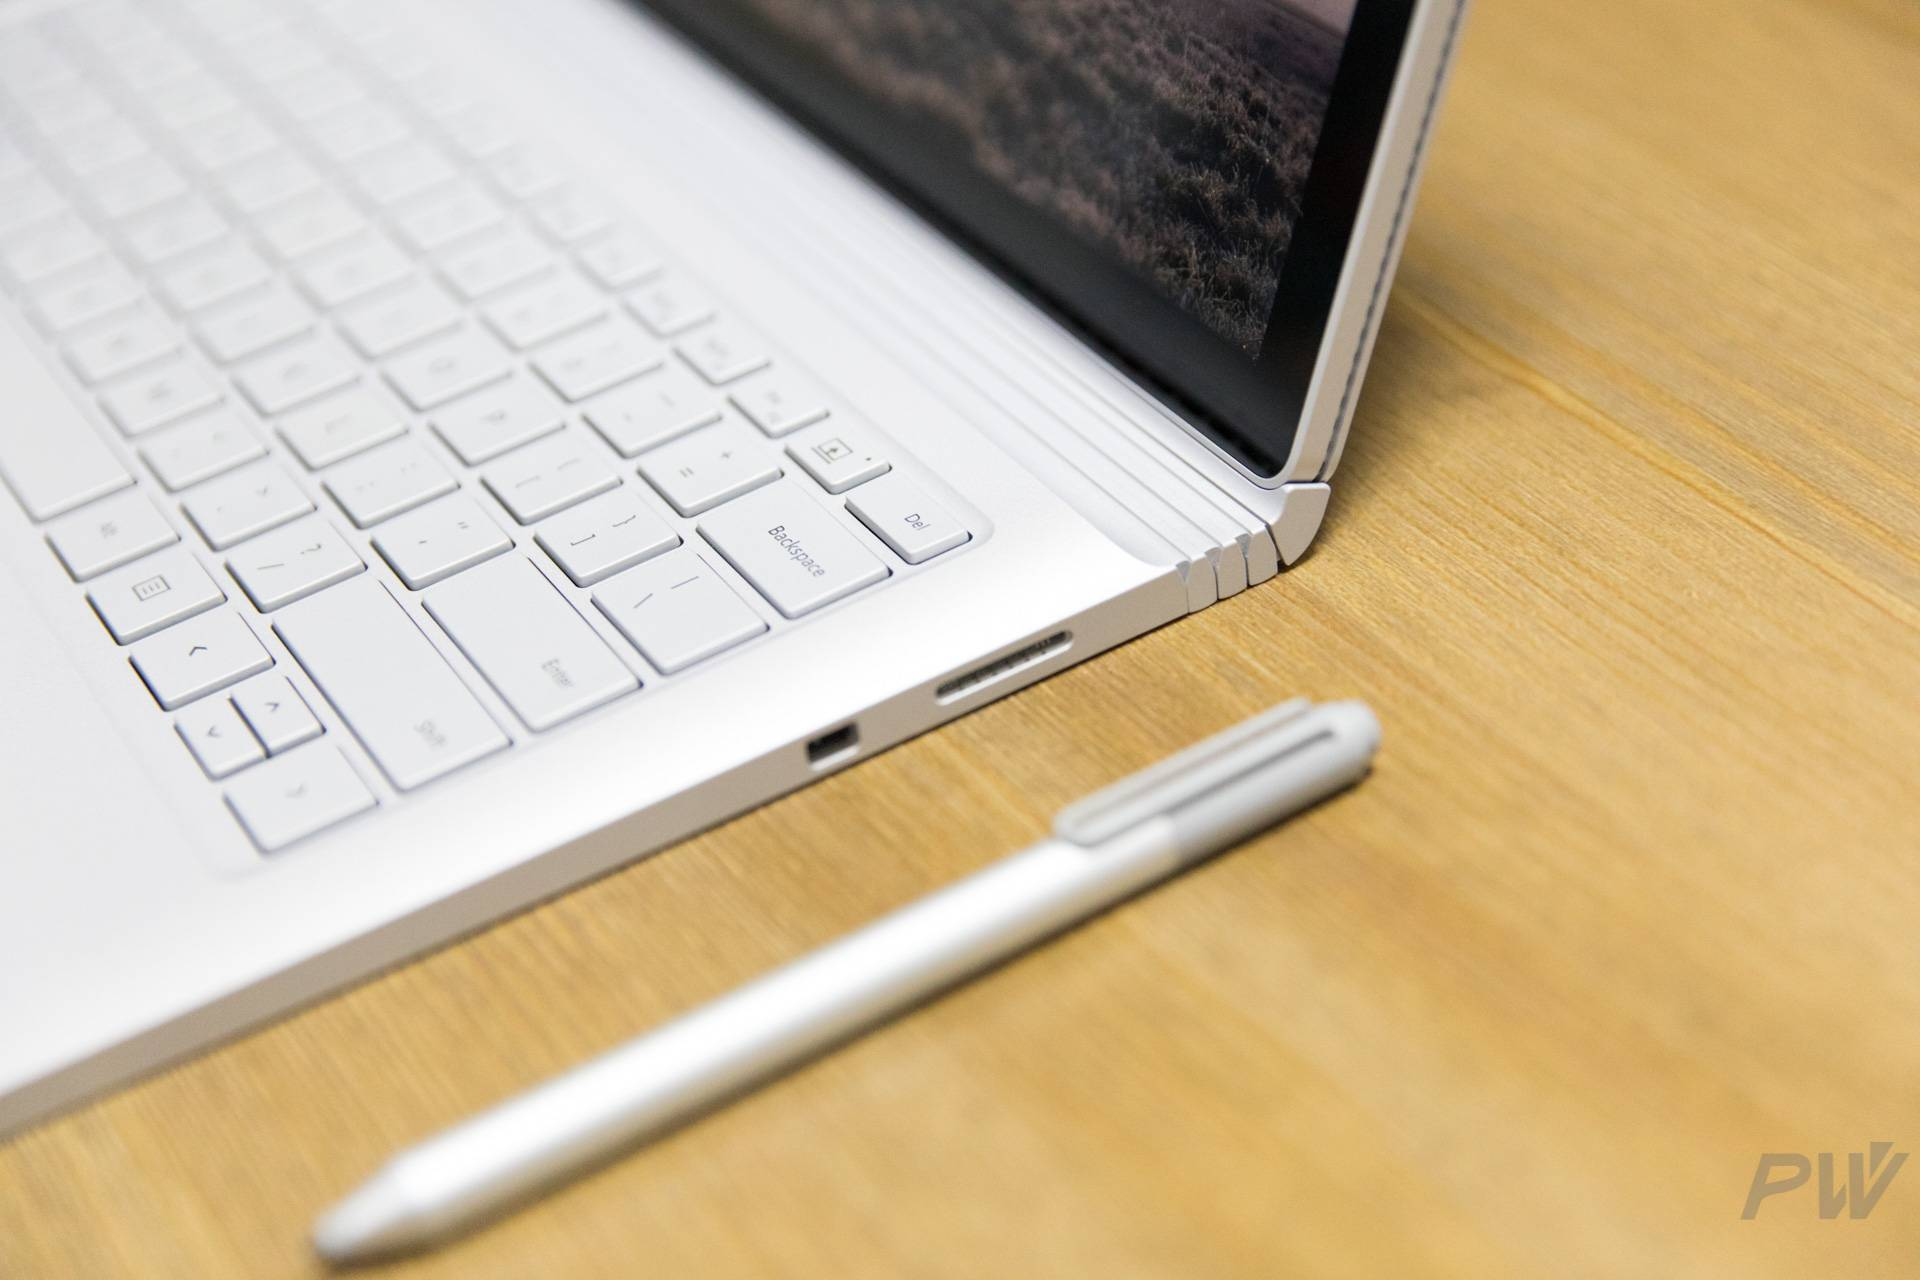 Microsoft Surface Book 2017 Photo by Hao Ying-41